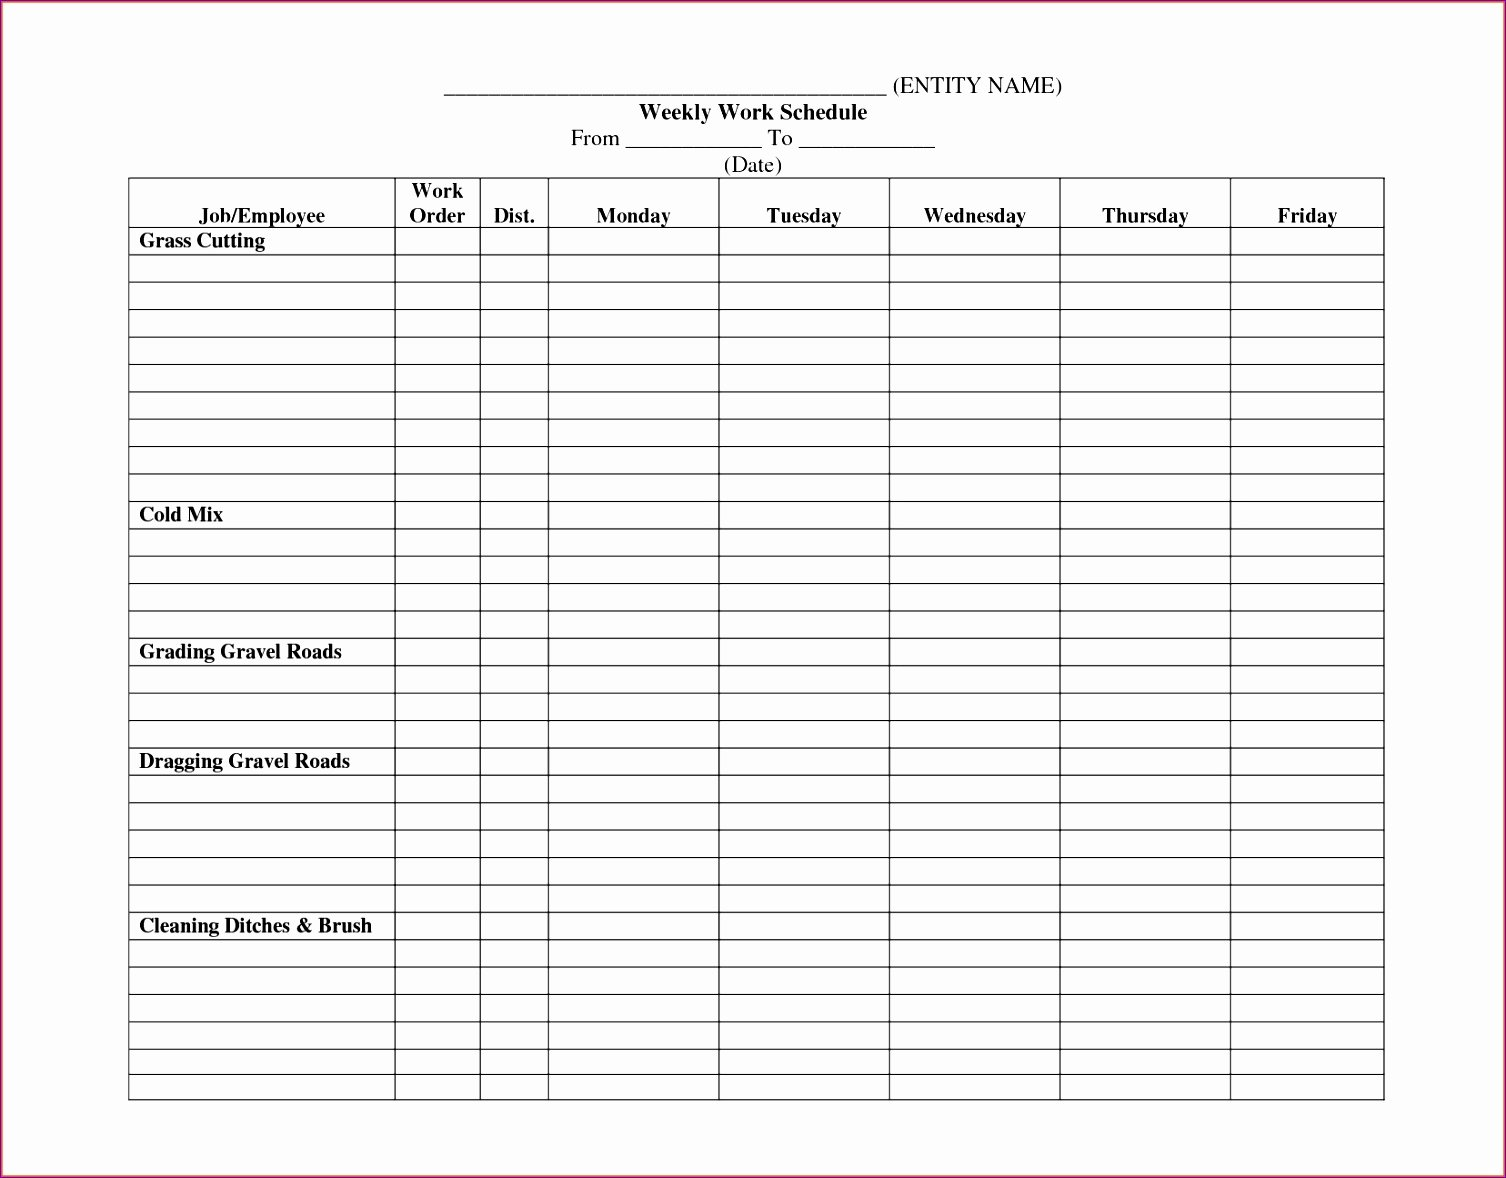 Staffing Plan Template Excel New 12 Staffing Schedule Template Excel Free Exceltemplates